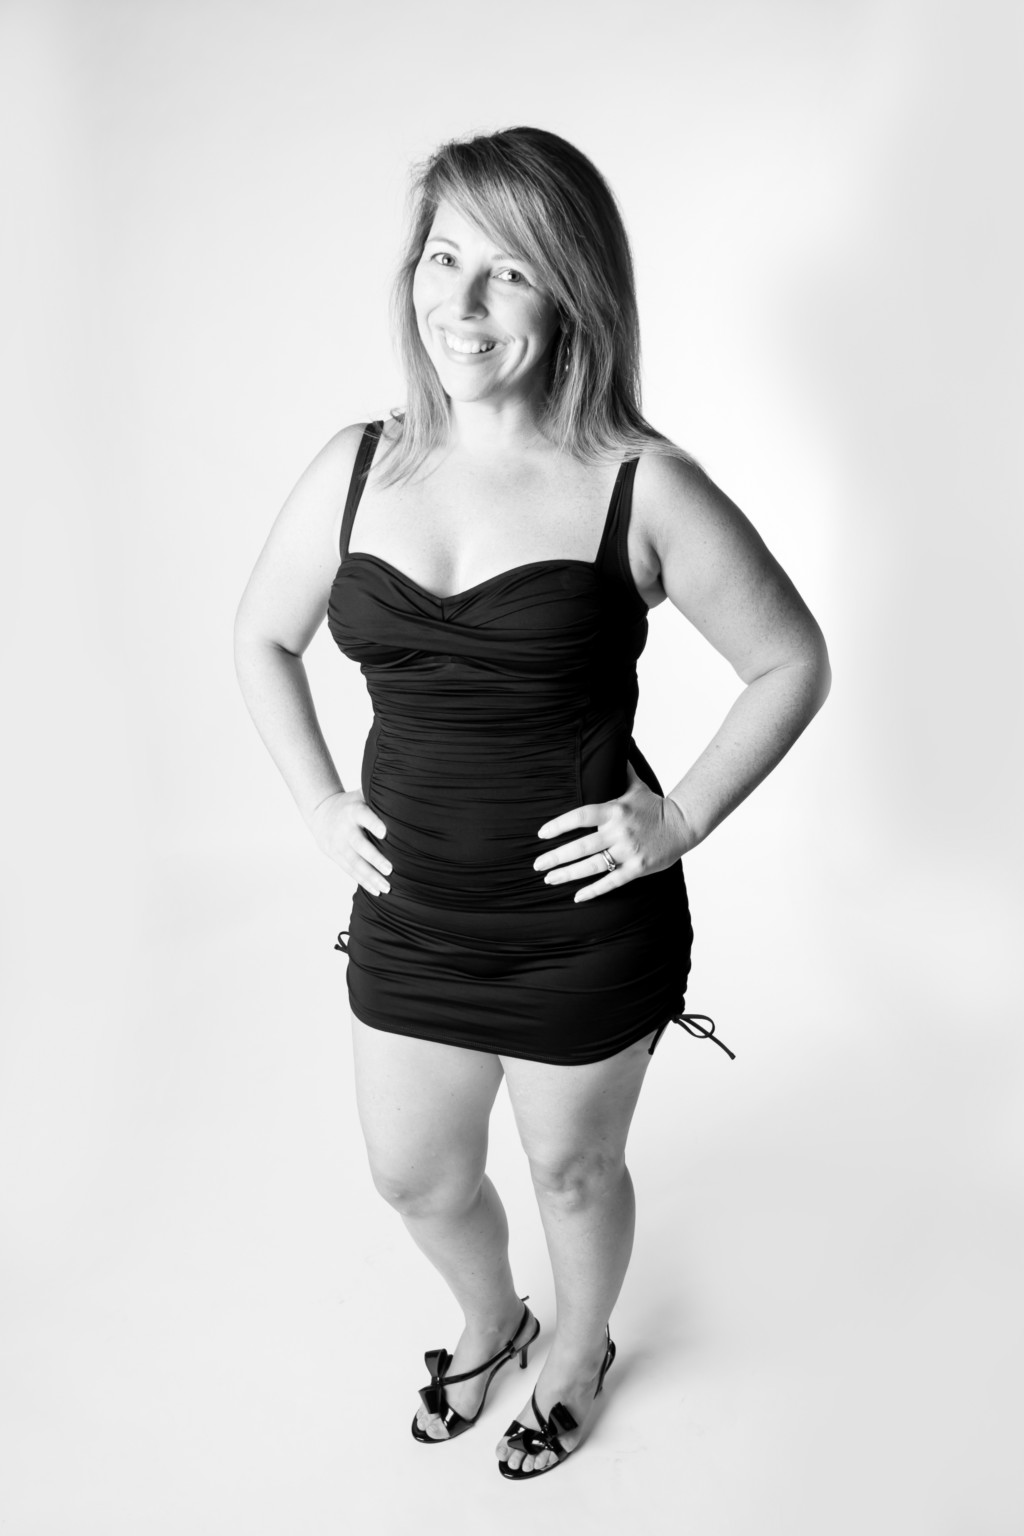 Kristen McGuire - Real Mom Bods - Body After Baby - Columbia SC Moms Blog